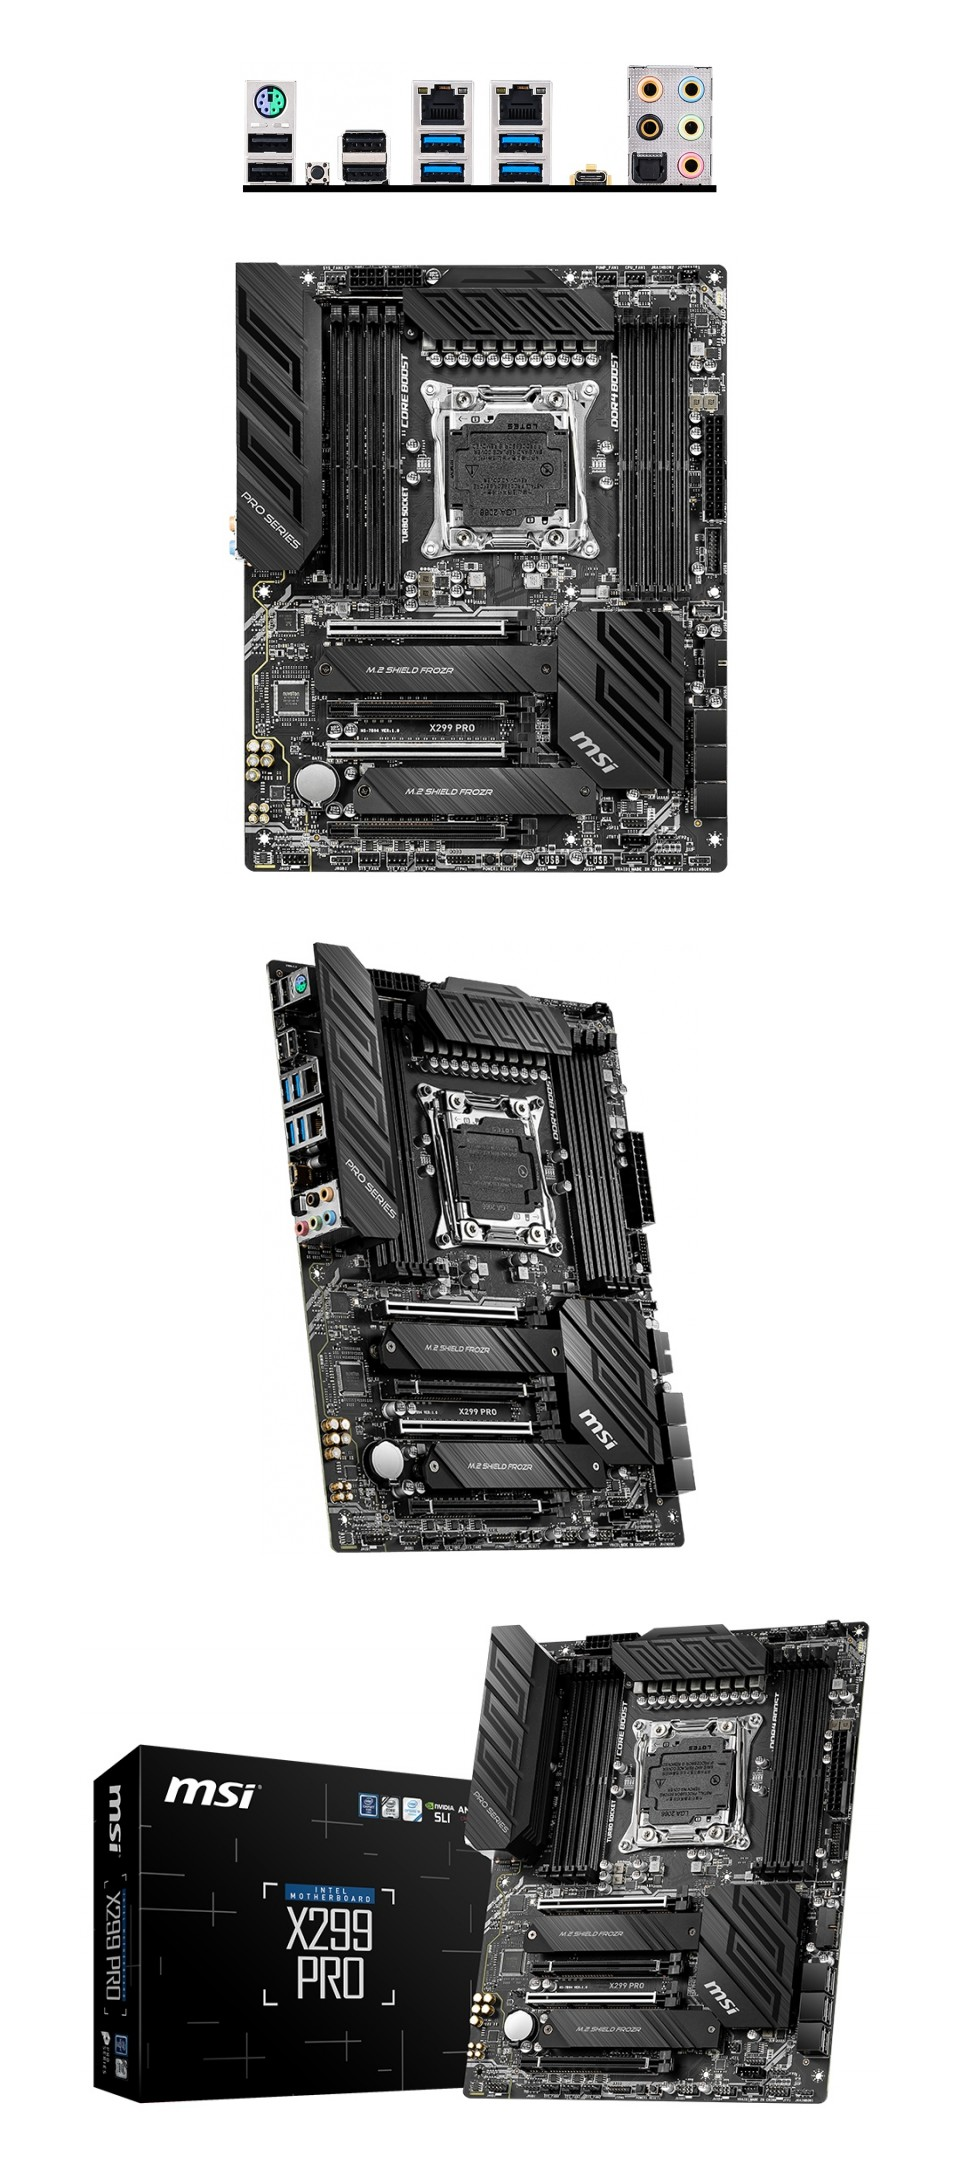 MSI X299 Pro Motherboard product